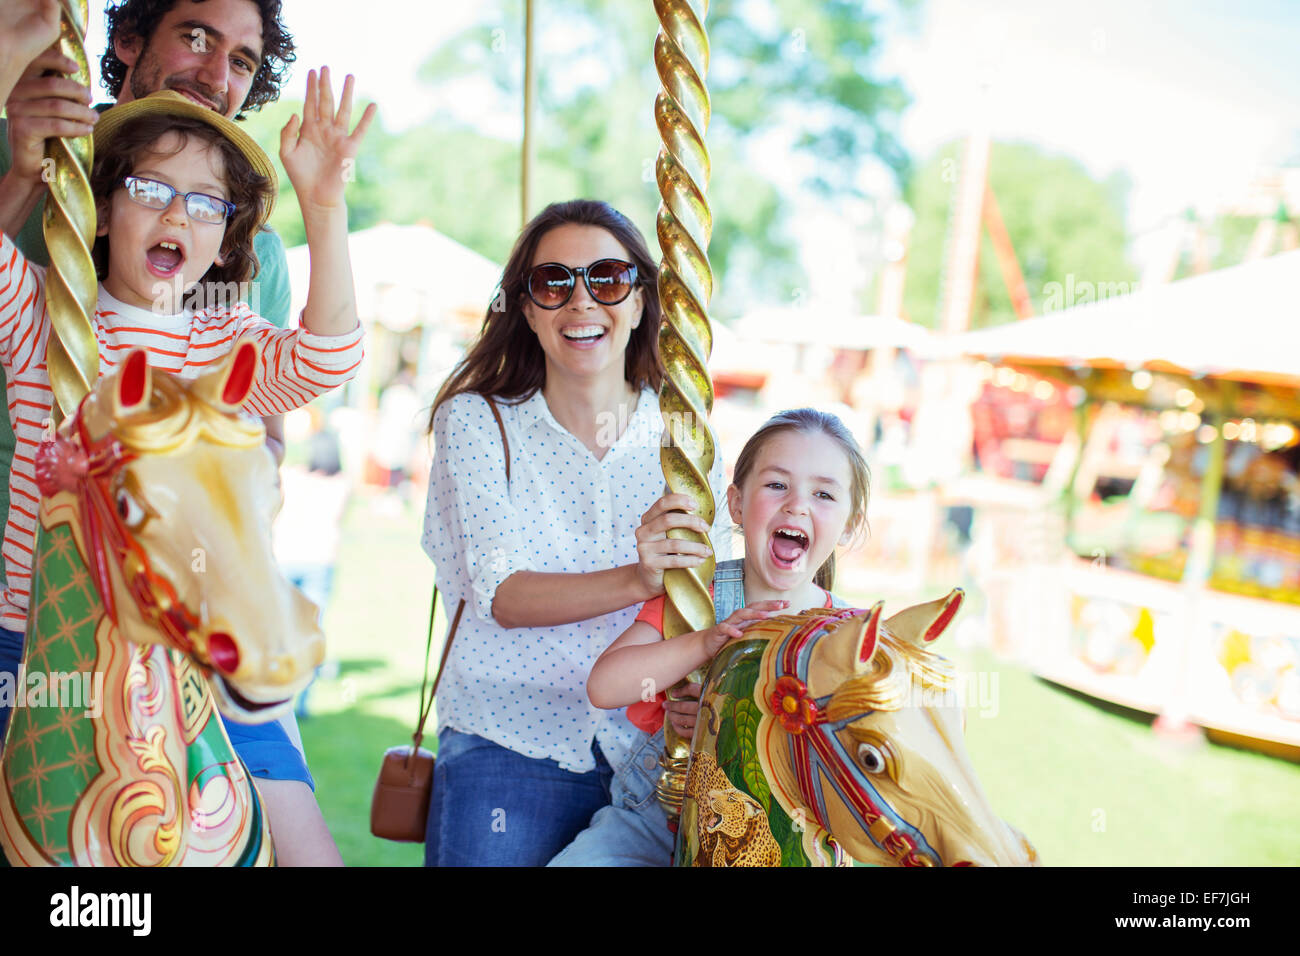 Family on carousel in amusement park - Stock Image